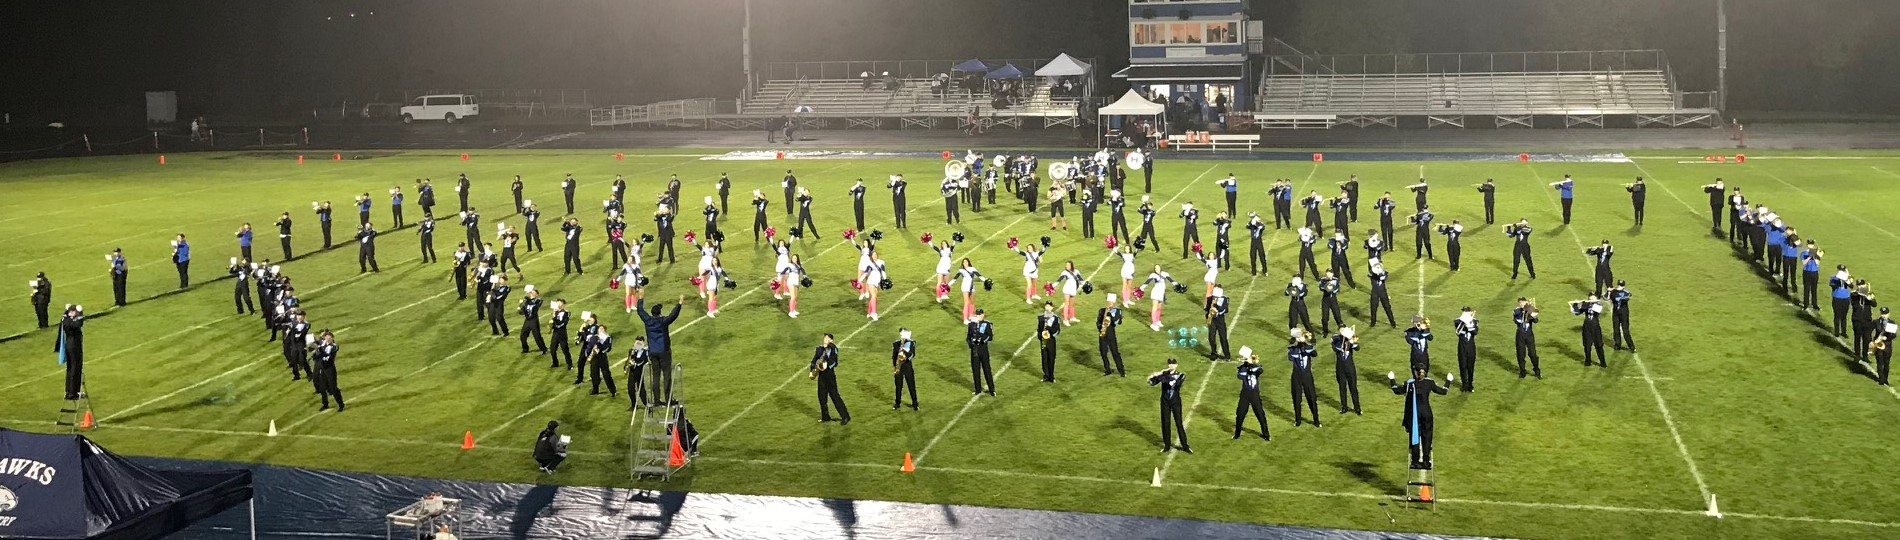 Marching band and cheerleaders performing halftime show